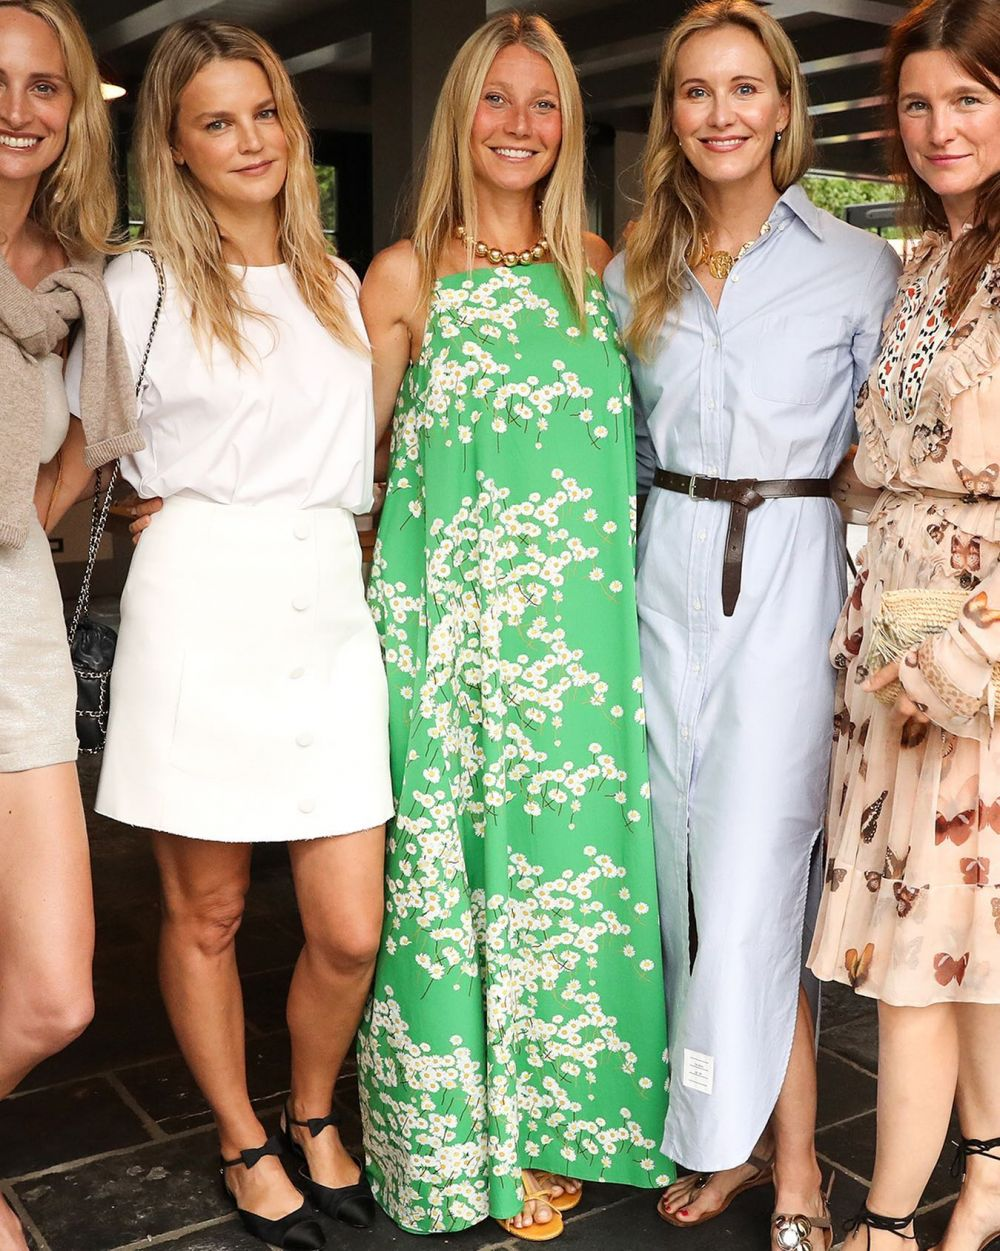 GWYNETH PALTROW WEARING OUR AUDREY DRESS. 💚  Pinch me, did this happen?  As you may know we have inspired multiple styles by her iconic looks through the years ~ now it has come full circle.  My mum and I are beyond proud. 🤍